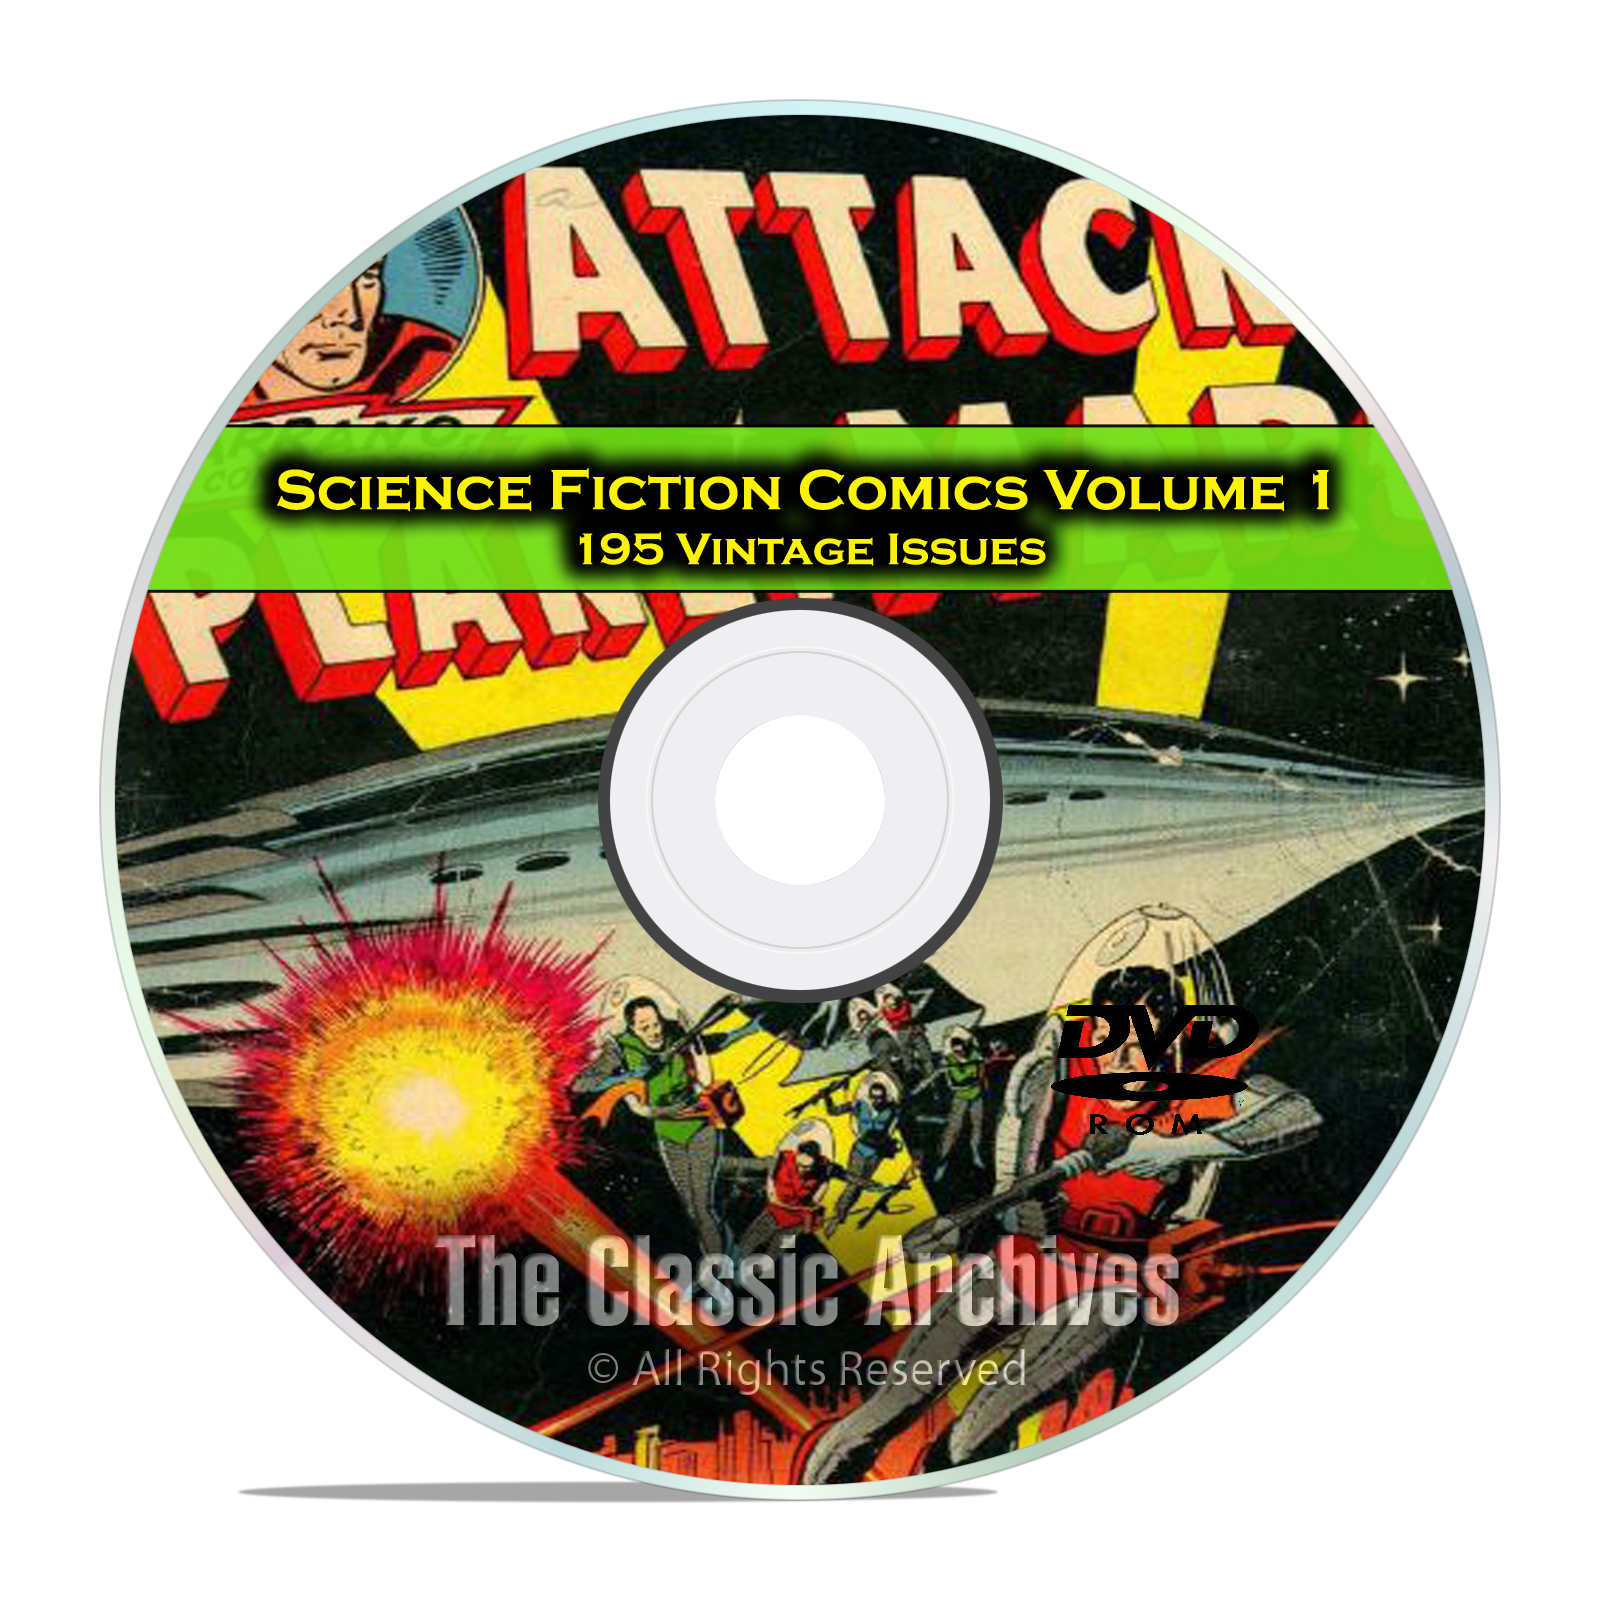 Science Fiction Comics, Vol 1, Space Adventures, Golden Age Comics PDF DVD